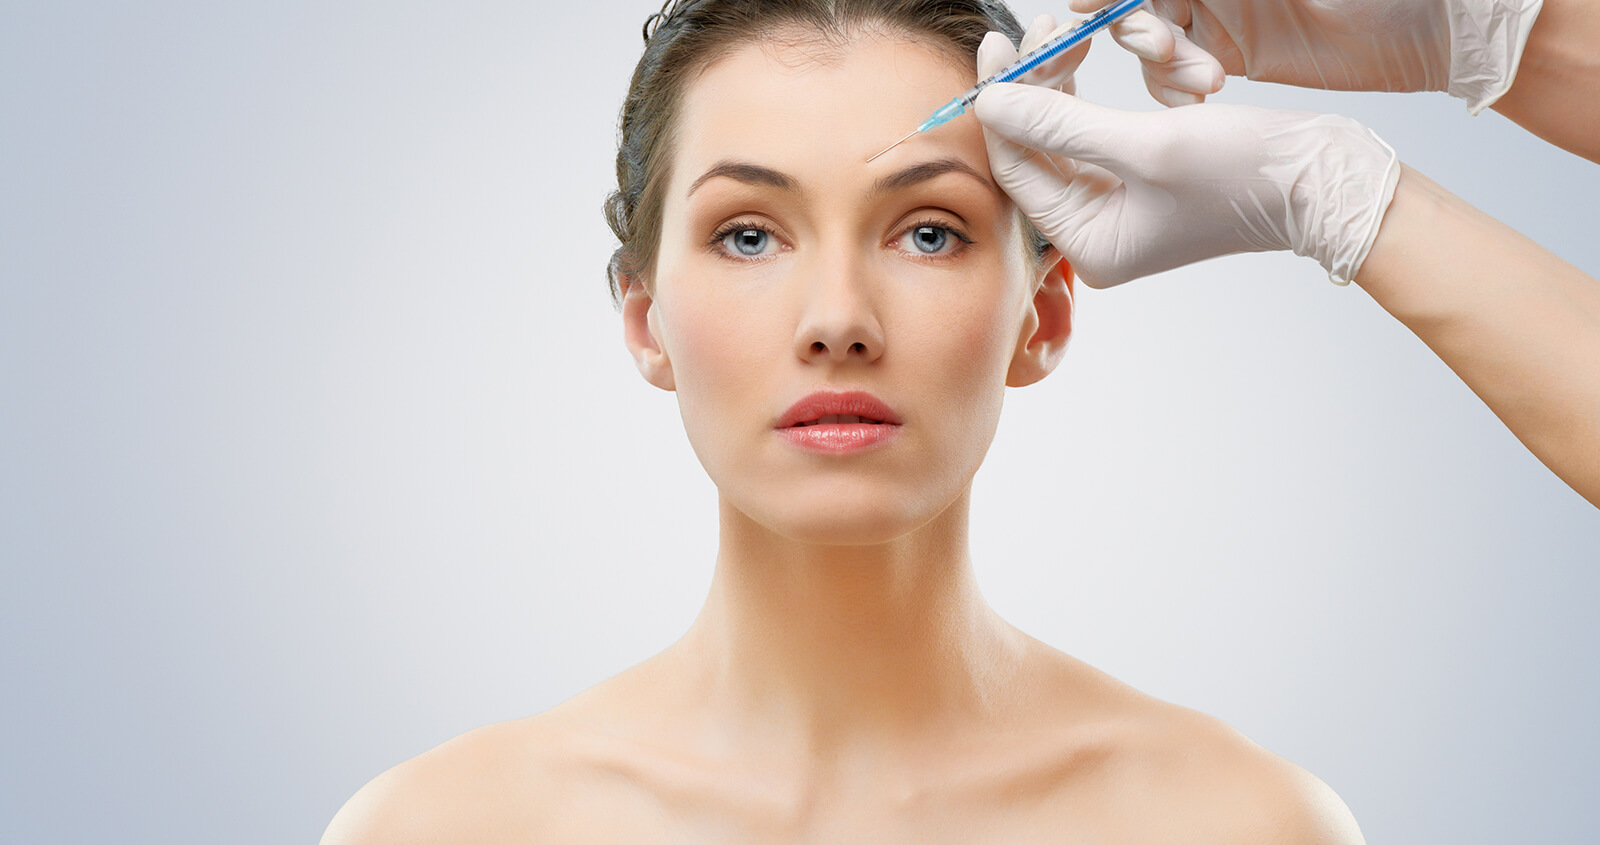 Wrinkle Prevention With Botox in New York Area